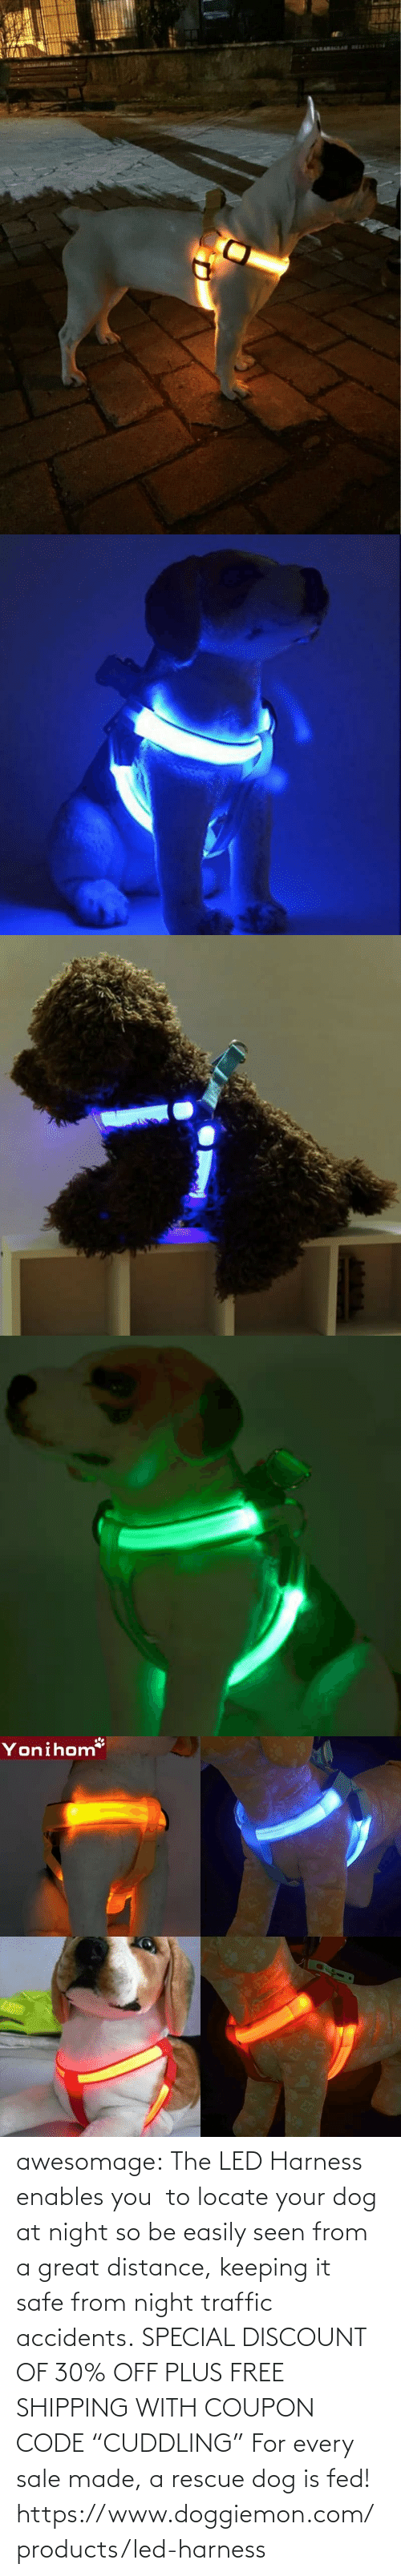 "Easily: awesomage:   The LED Harness enables you  to locate your dog at night so be easily seen from a great distance, keeping it safe from night traffic accidents. SPECIAL DISCOUNT OF 30% OFF PLUS FREE SHIPPING WITH COUPON CODE ""CUDDLING"" For every sale made, a rescue dog is fed!   https://www.doggiemon.com/products/led-harness"